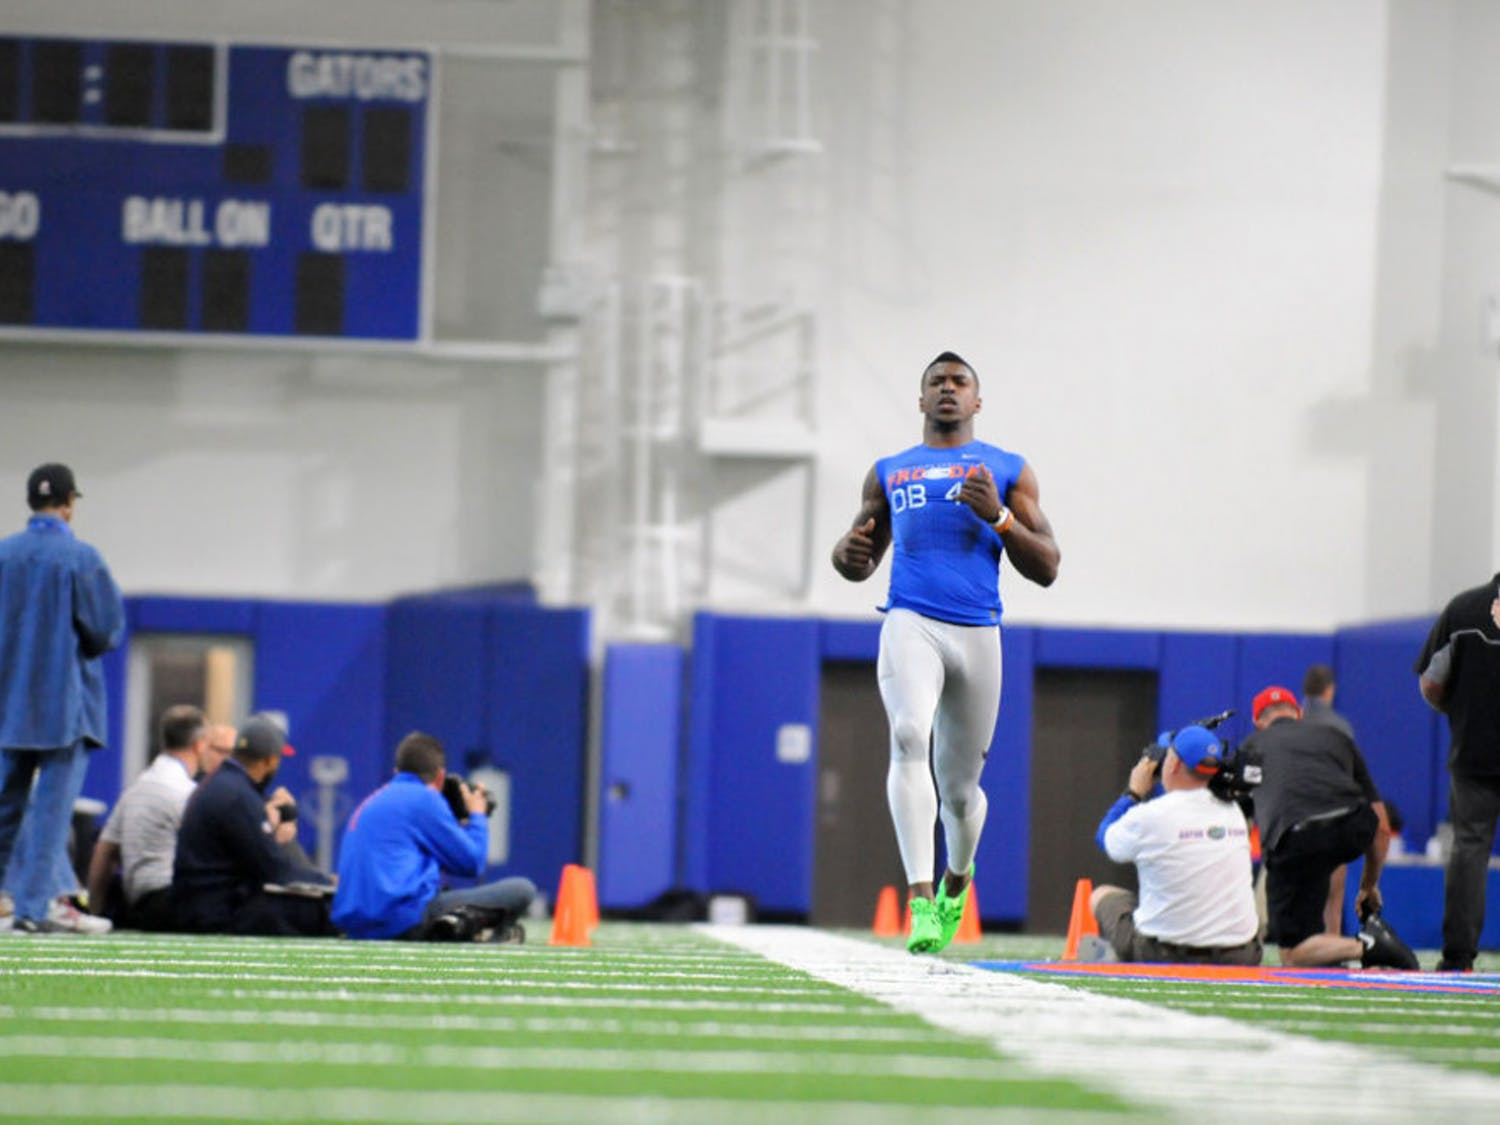 Eighteen UF football players, 15 of whom were on the team last season, practiced in front of 70 scouts and assistant coaches representing all 32 NFL teams ahead of May's NFL Draft.